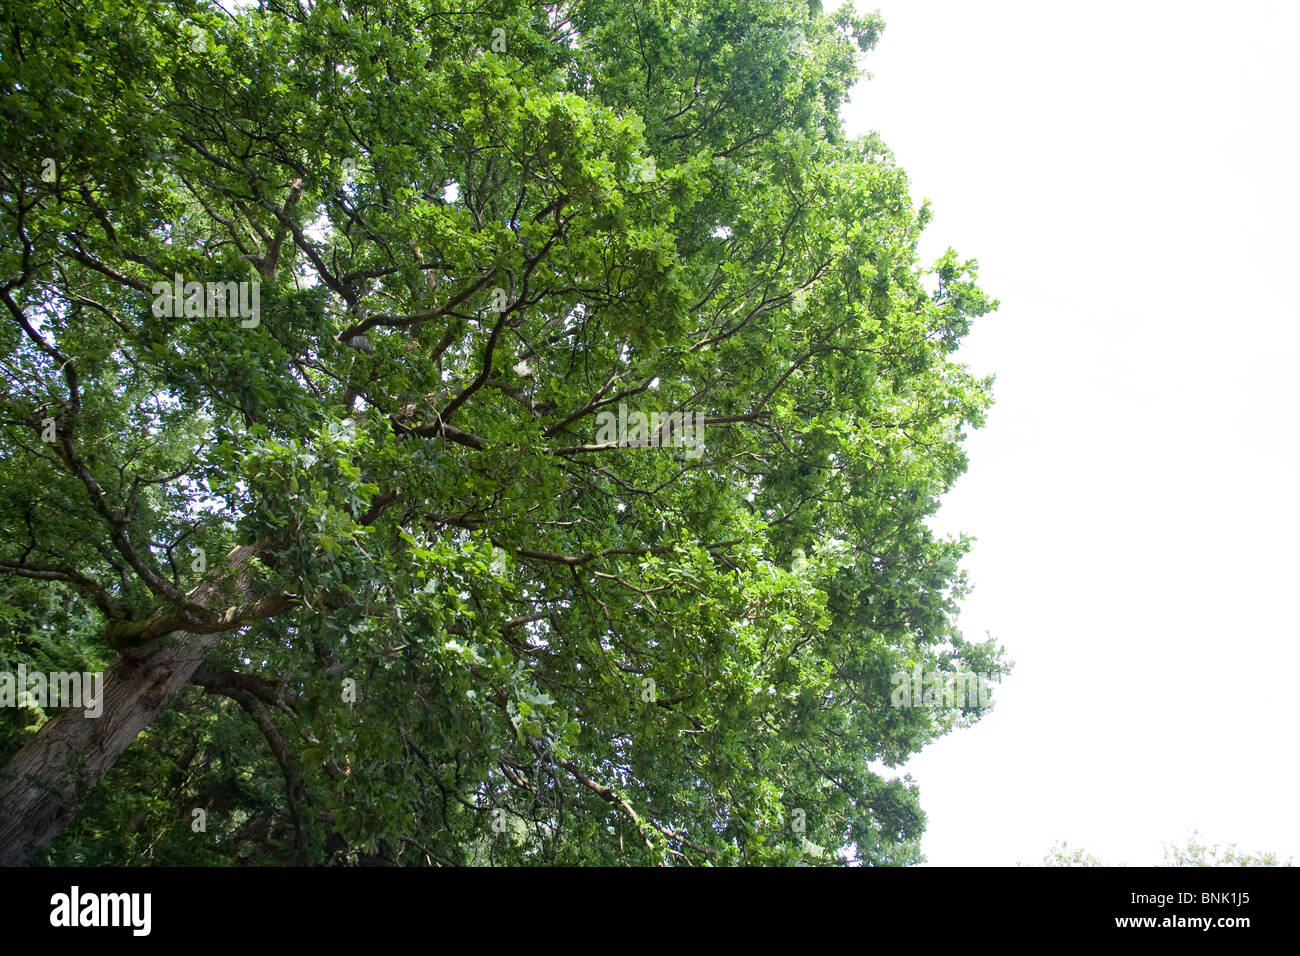 The top of a large Oak tree in the daylight. - Stock Image